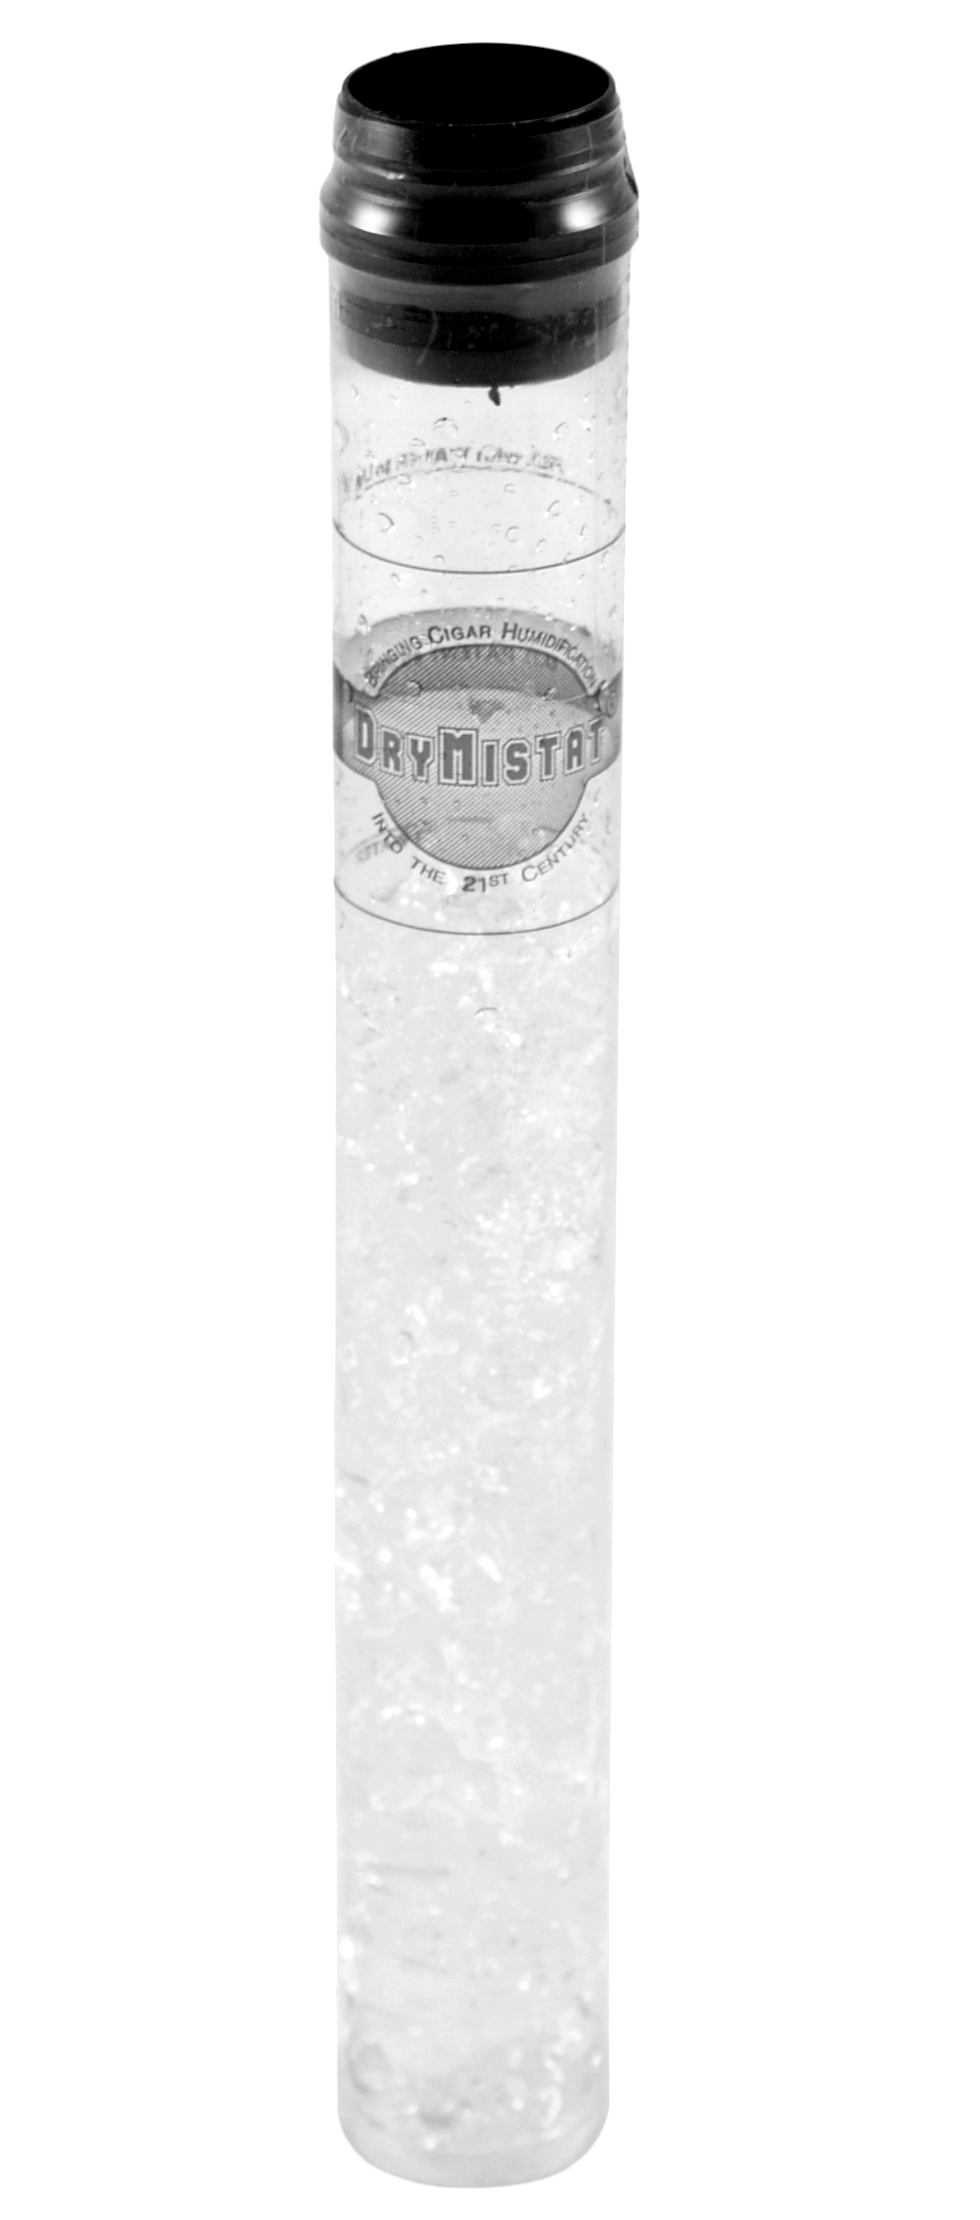 DryMistat Humidifier Tube